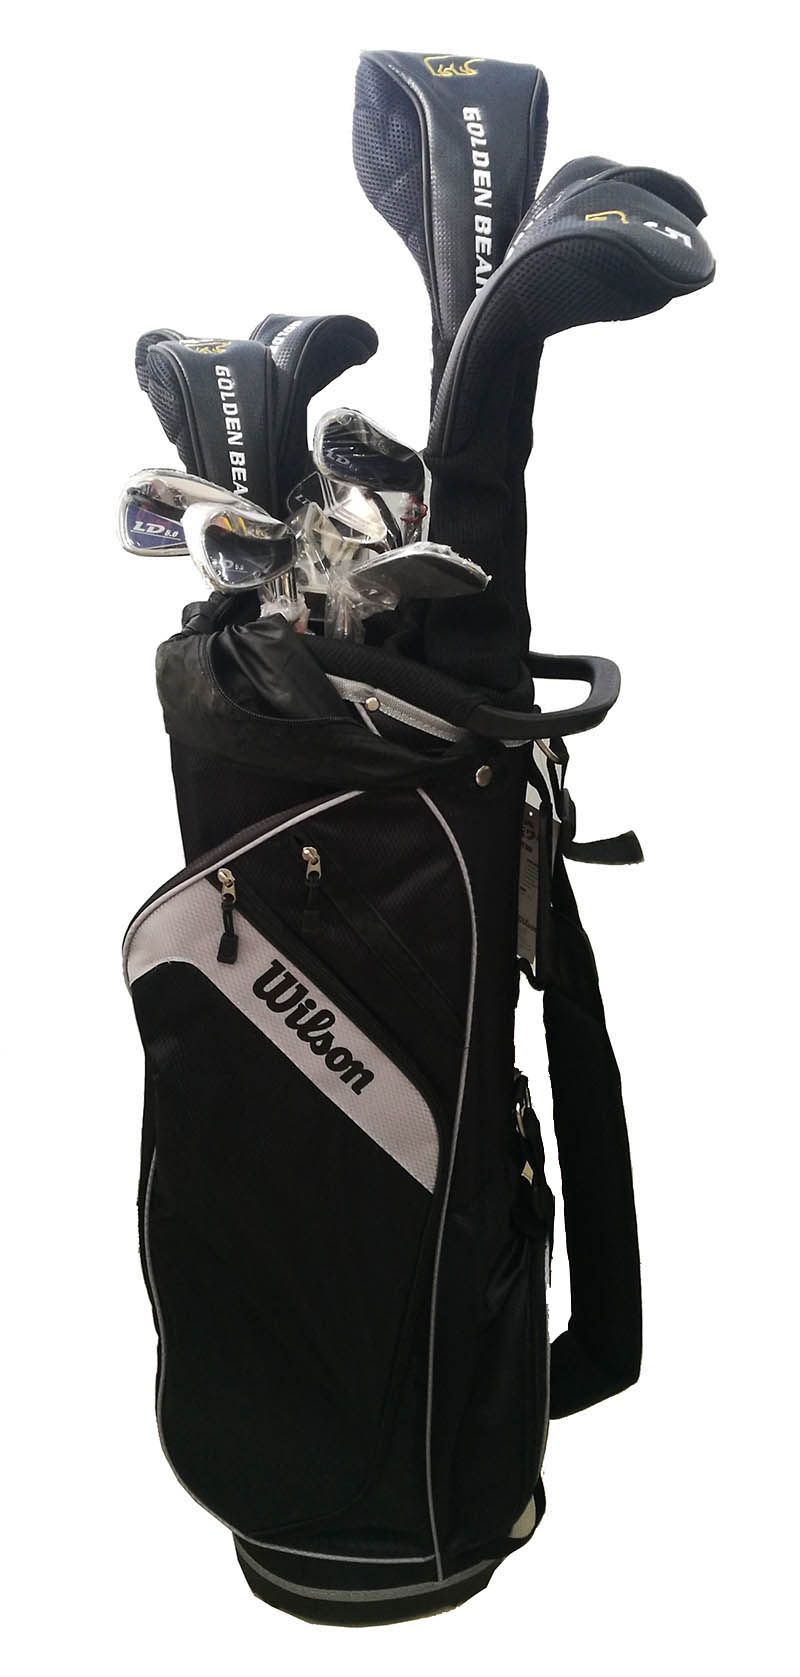 Palos de golf golden Bear LD5 05